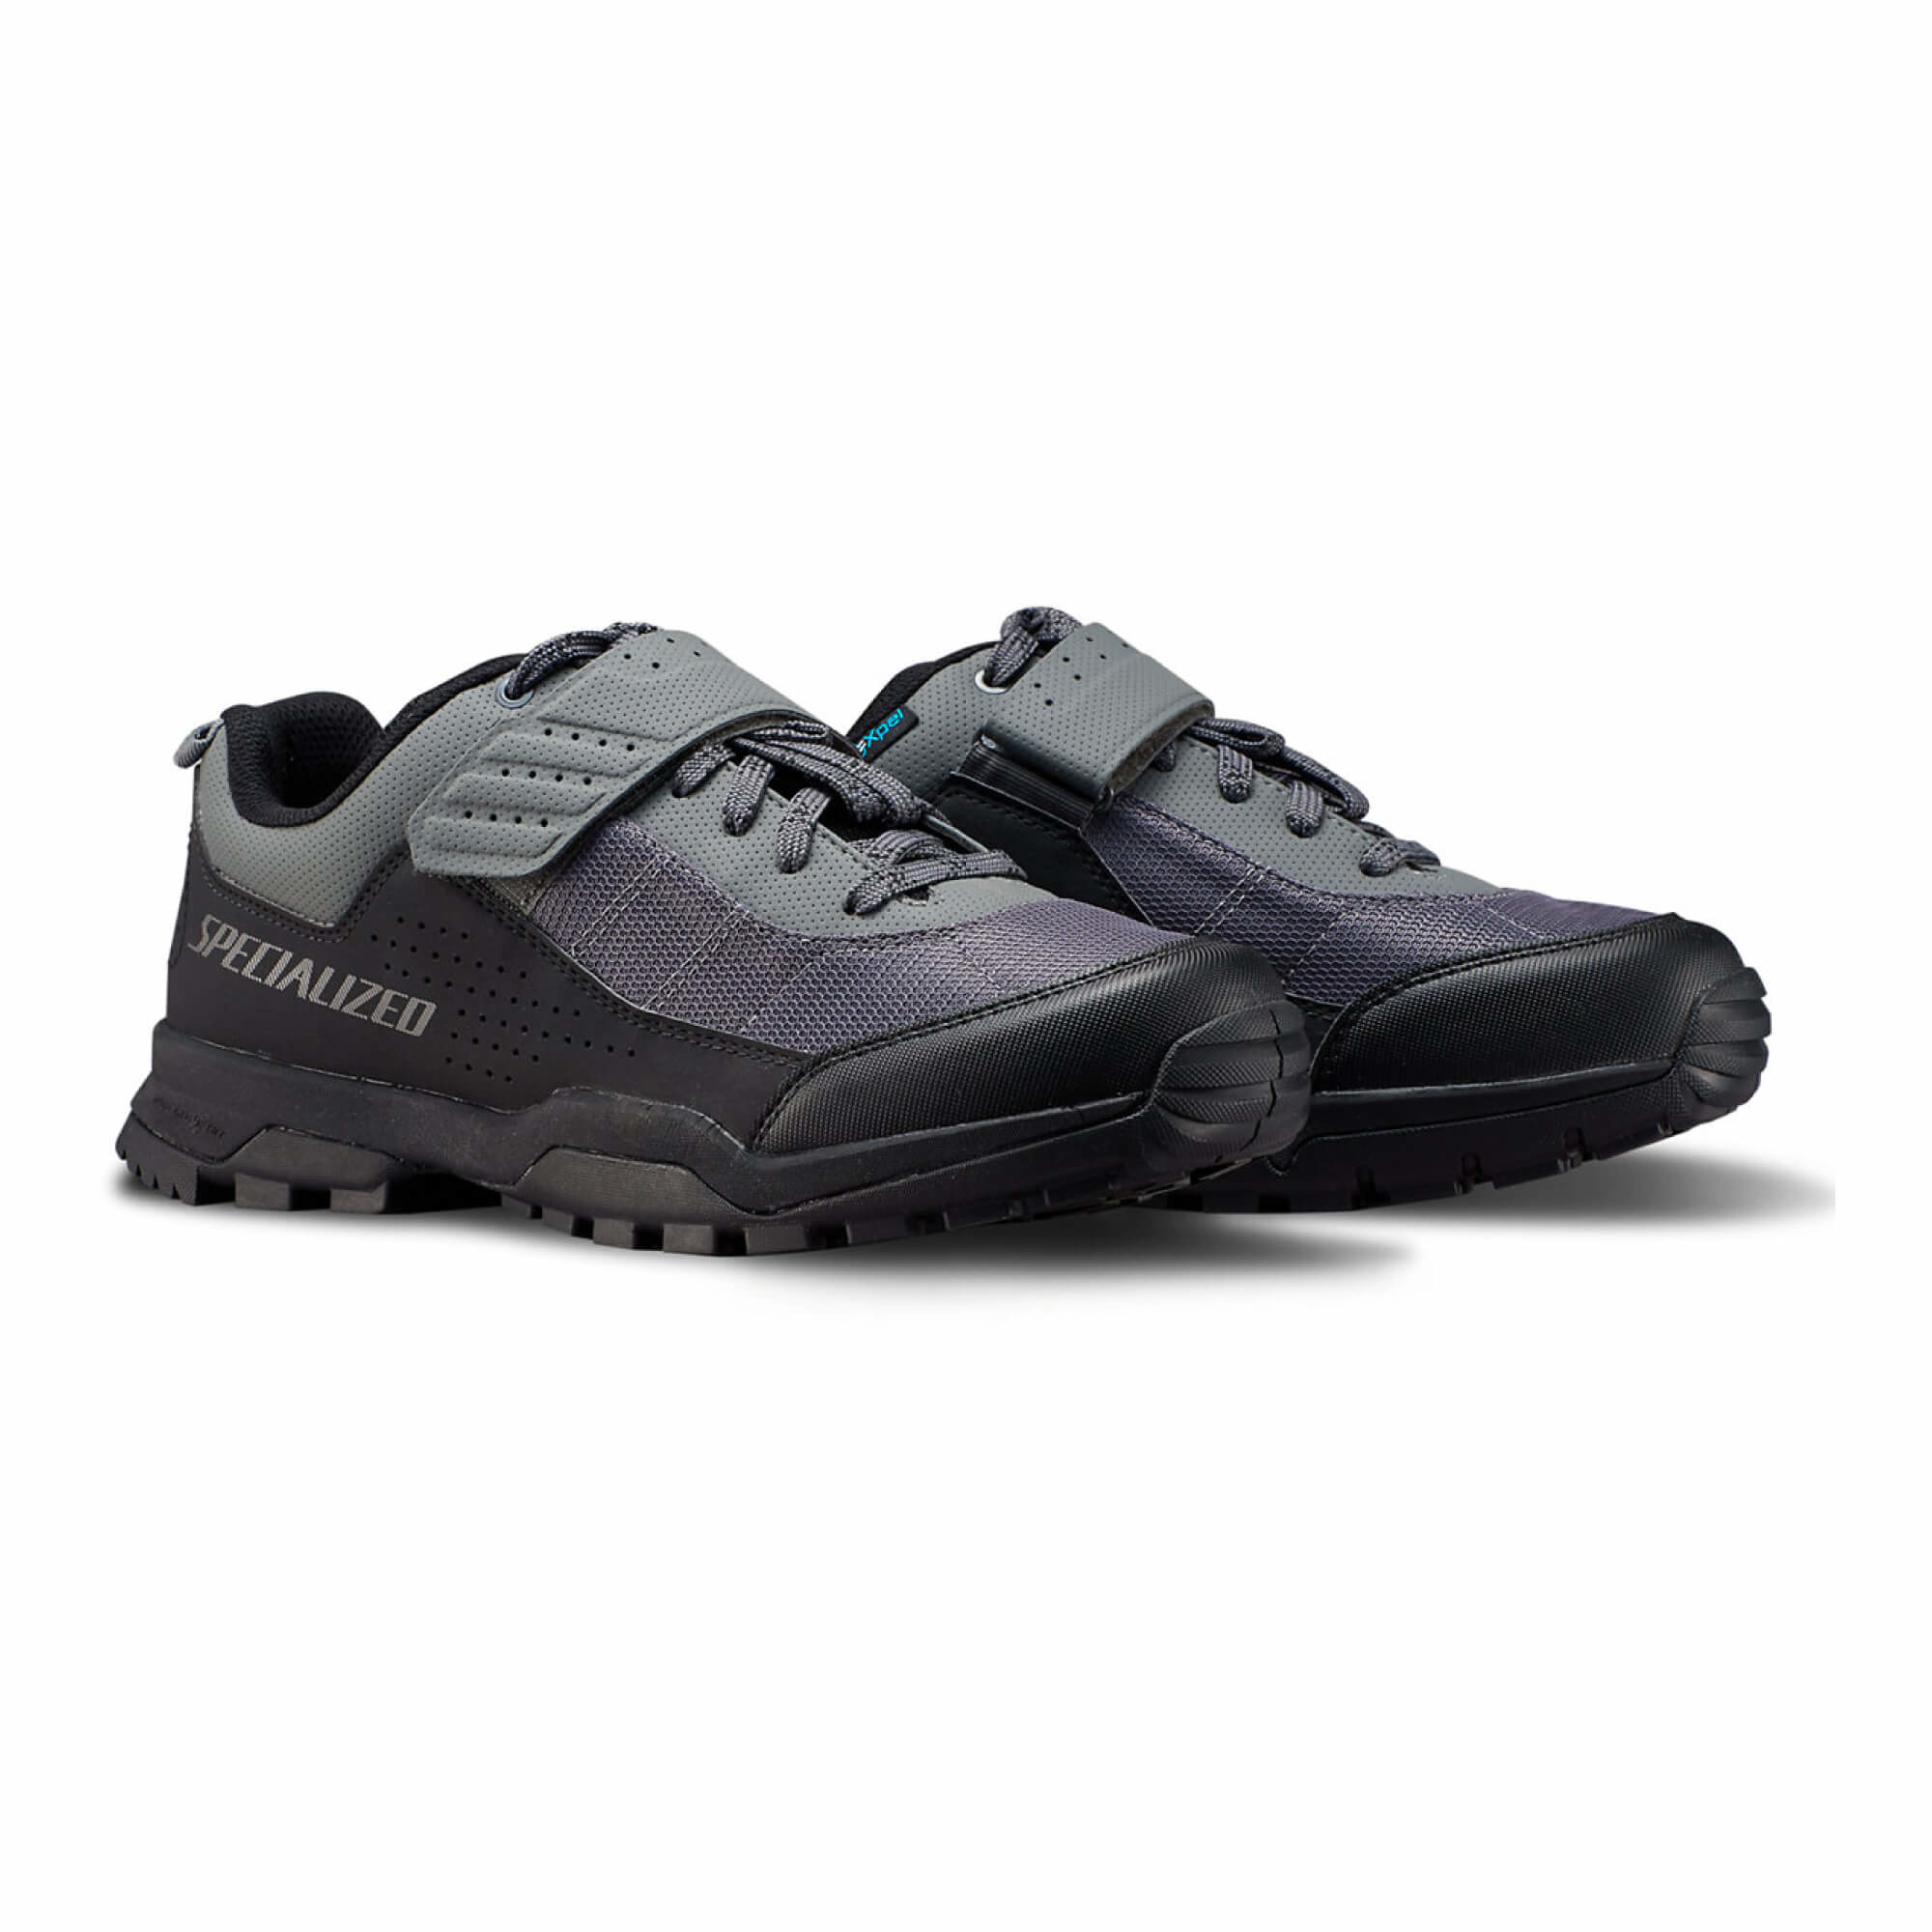 RIME 1.0 Mountain Bike Shoes-4